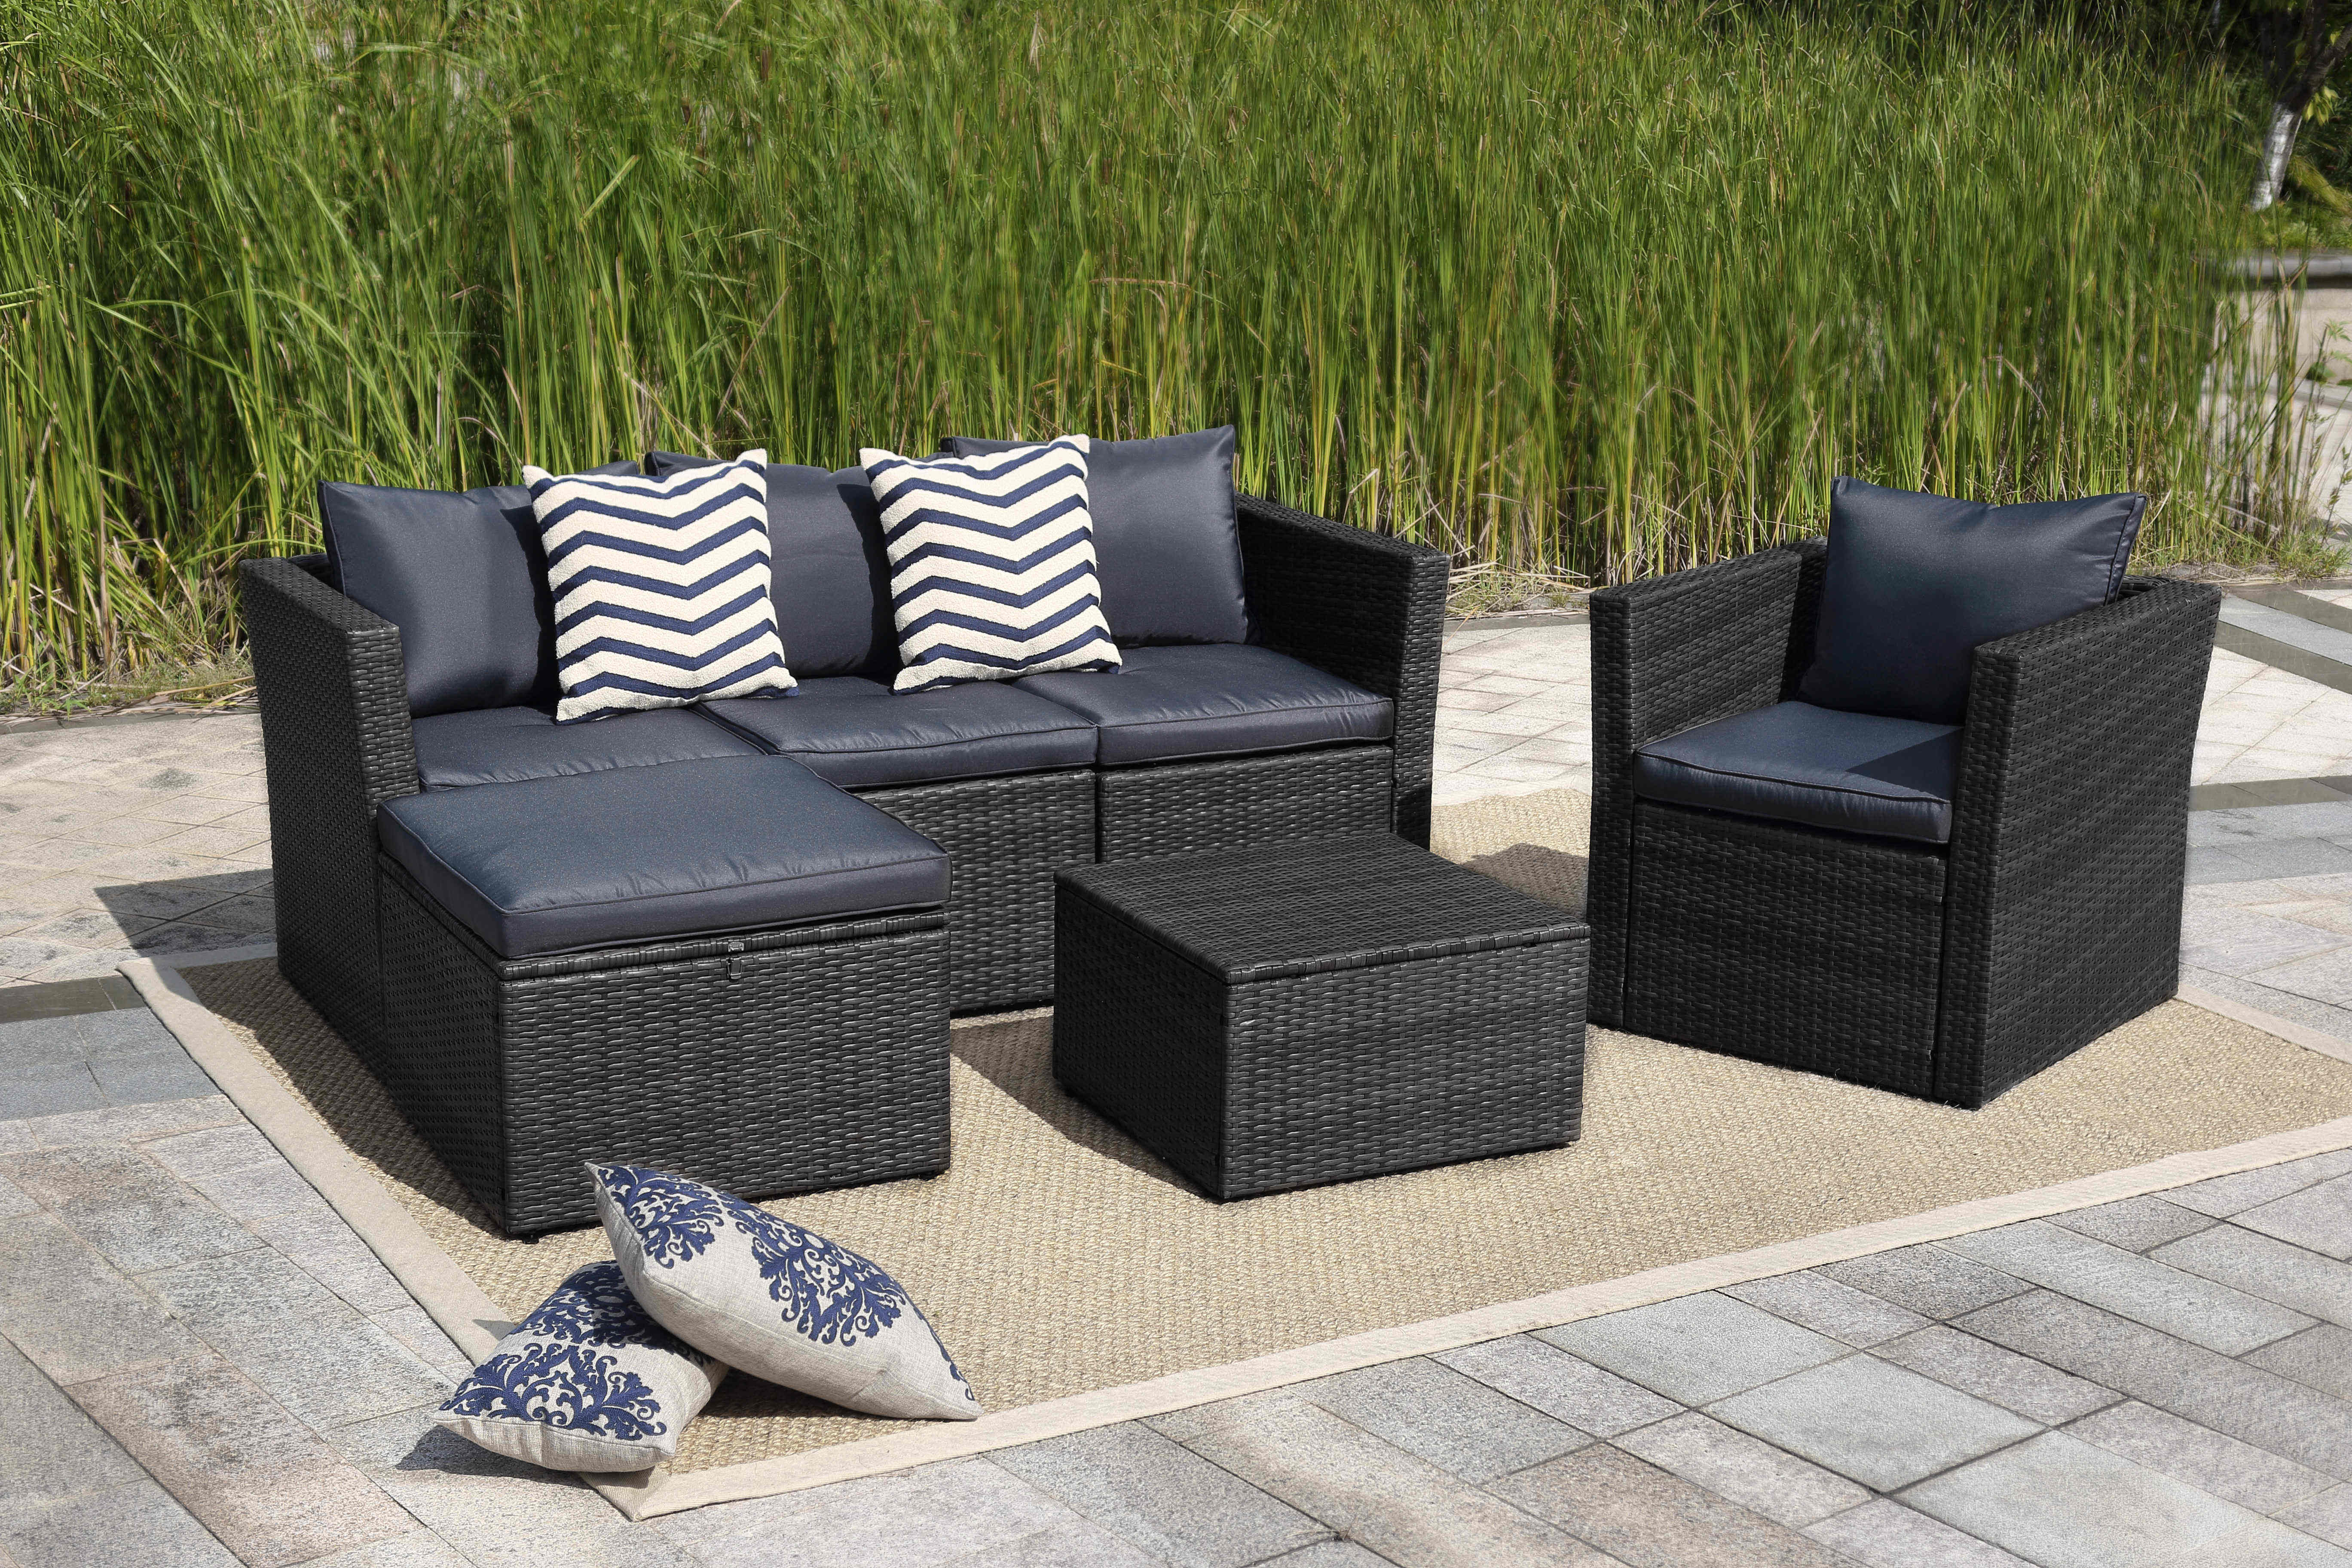 Pleasant New 6 Pcs Outdoor Furniture Set Table Sofa Chair Gray Hb412648 Interior Design Ideas Clesiryabchikinfo